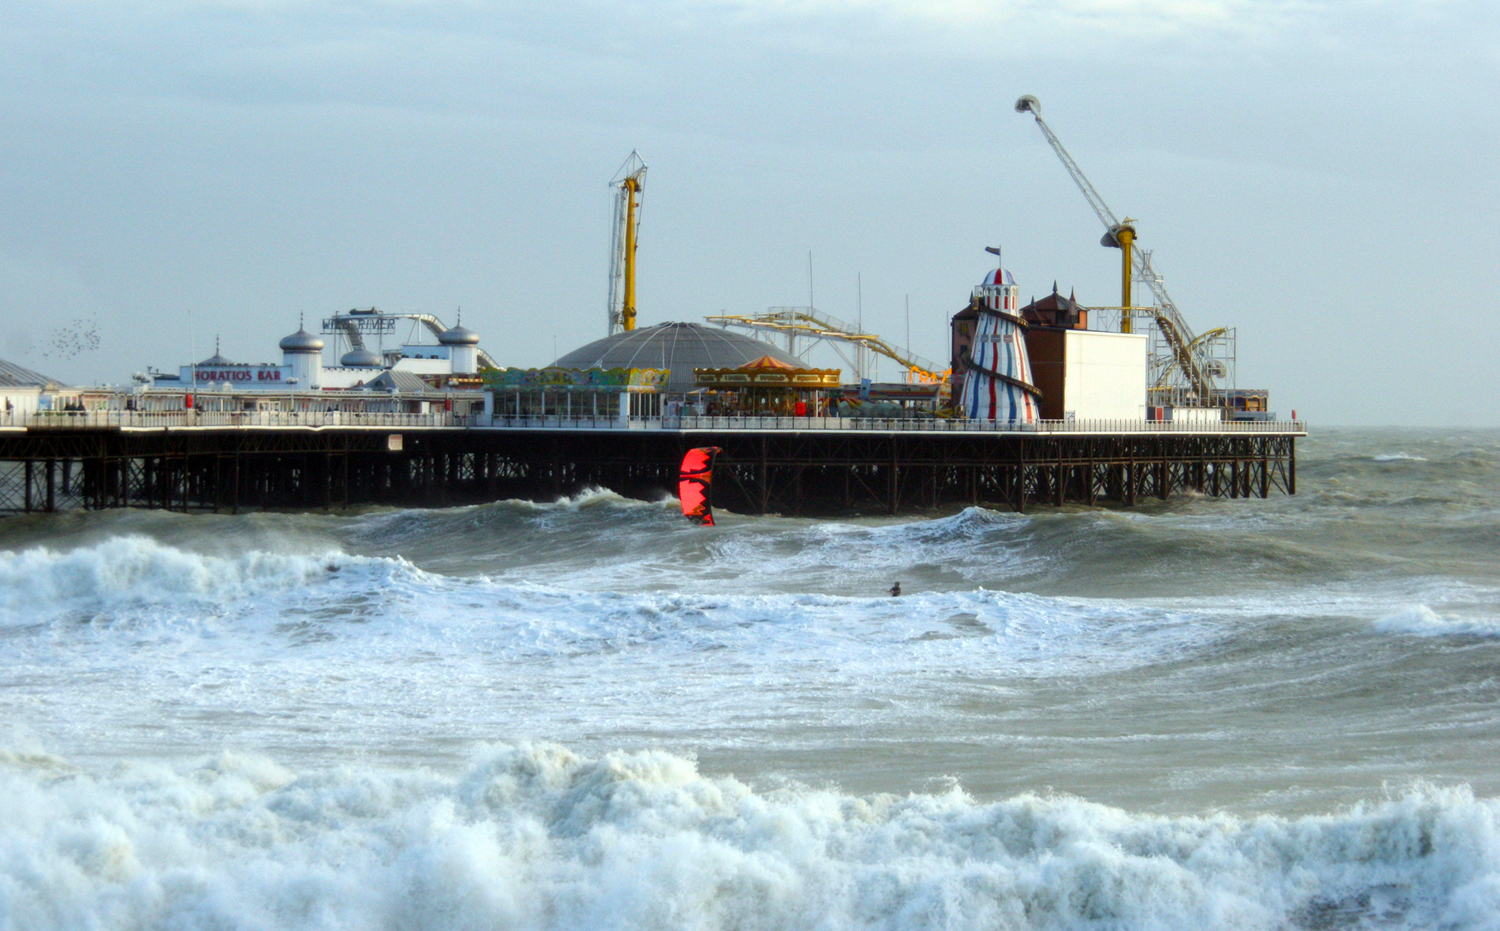 Preparing for the Palace Pier Jump